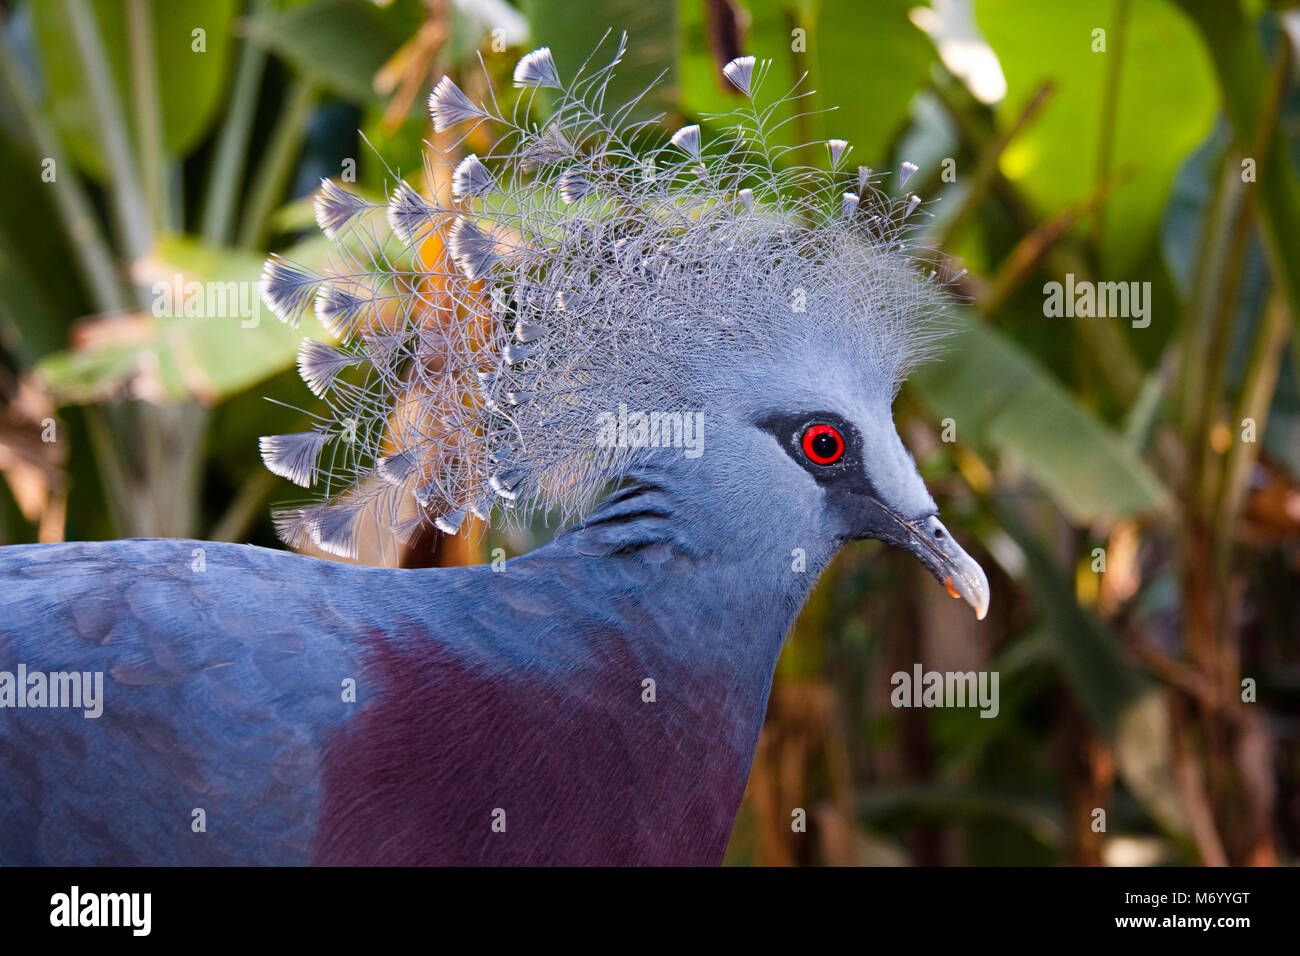 The Victoria Crowned Pigeon, Goura victoria, is evaluated as Vulnerable on the IUCN Red List of Threatened Species - Stock Image